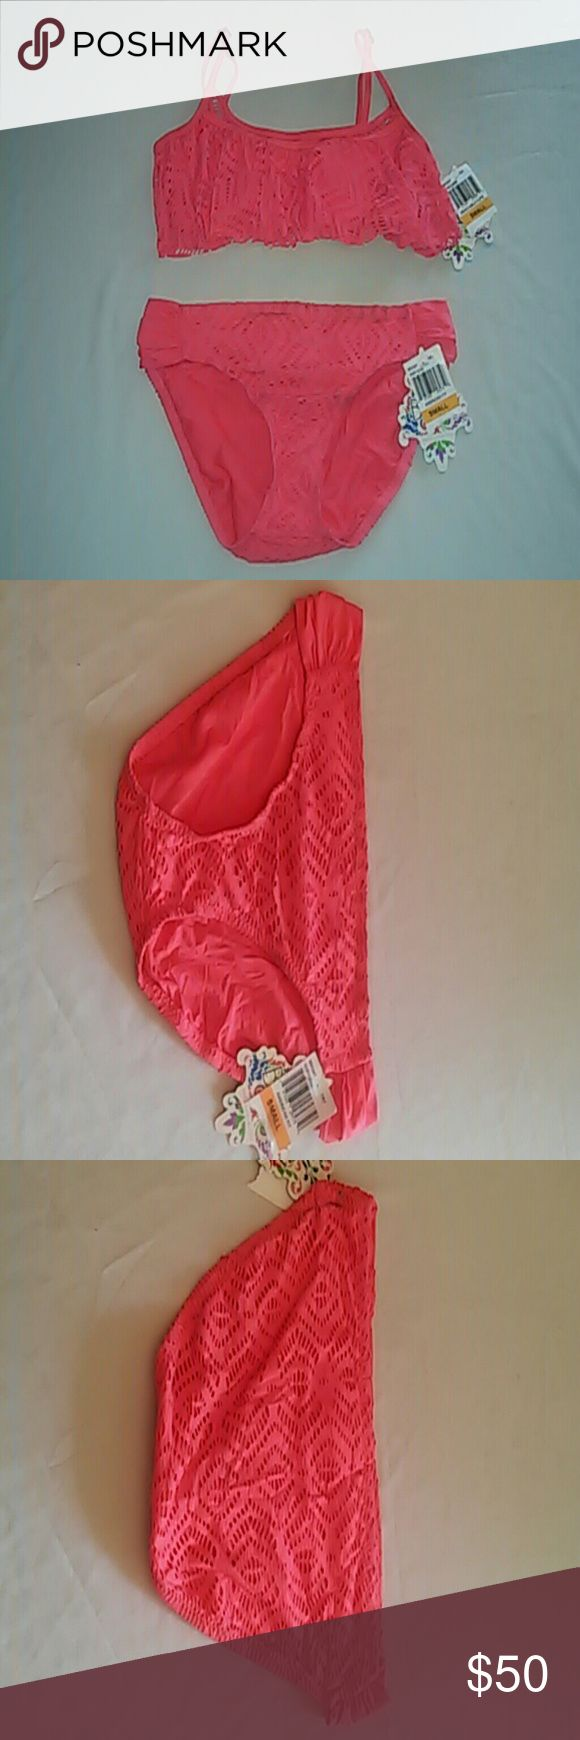 Pink Becca Two Piece Swimsuit Size Small Pink two piece swimsuit  Size small New with tags BECCA Swim